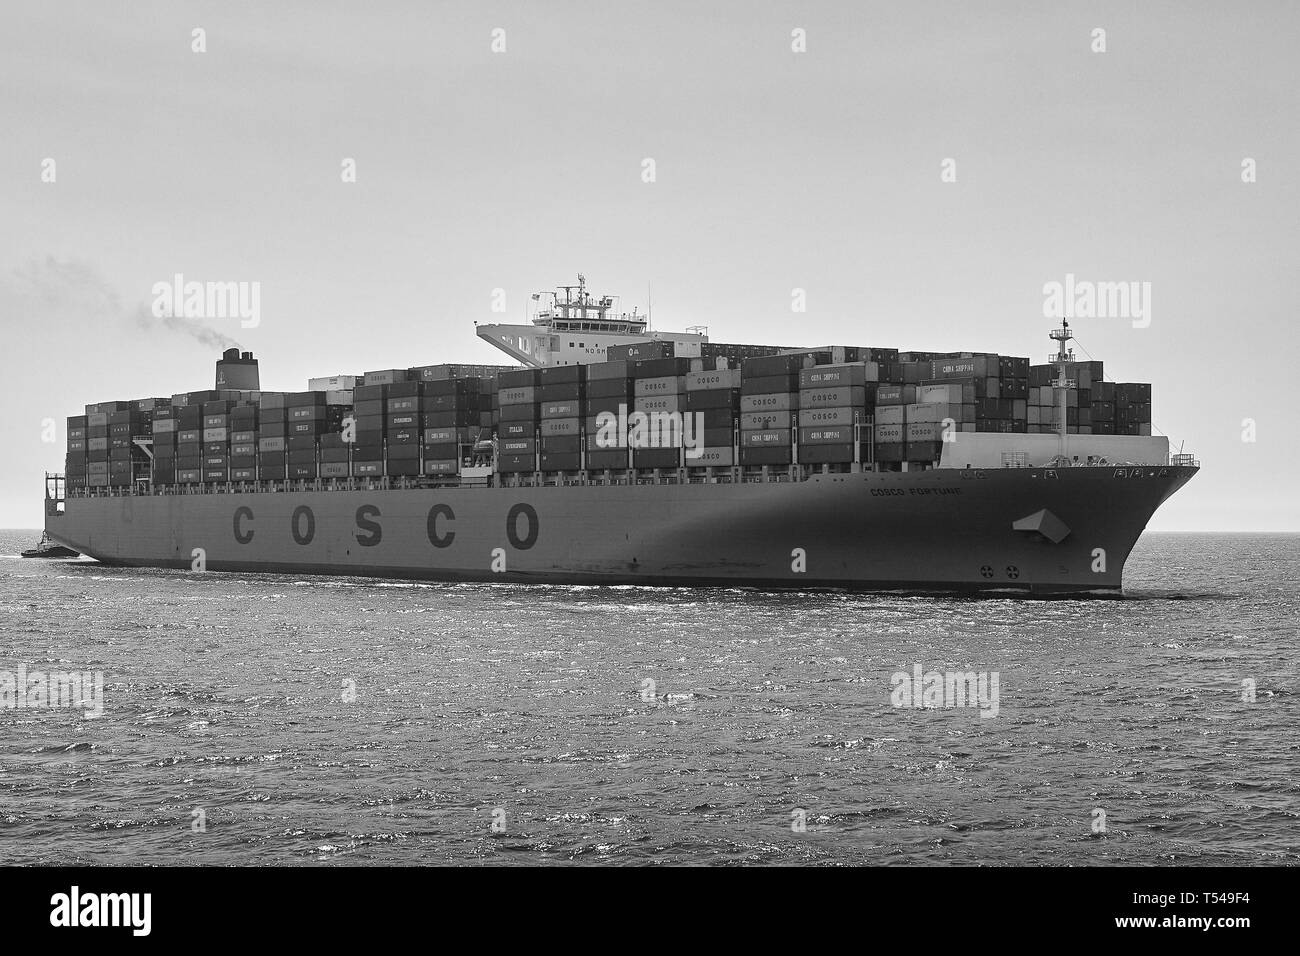 Black And White Image Of The COSCO Shipping, Container Ship, COSCO FORTUNE, Entering The Port Of Long Beach, California, USA. - Stock Image